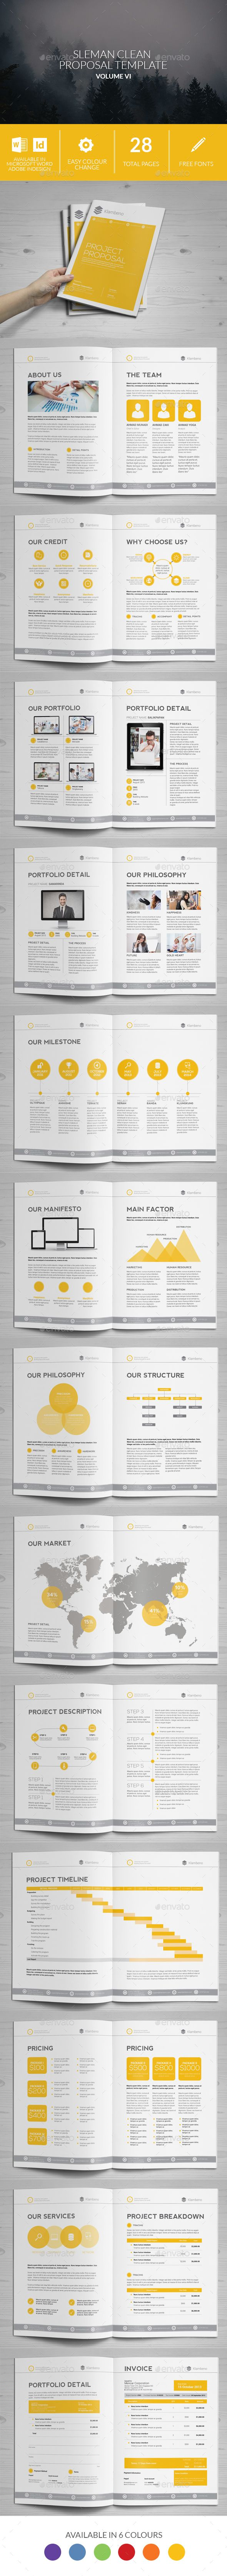 Best Business Proposal Images On   Business Proposal